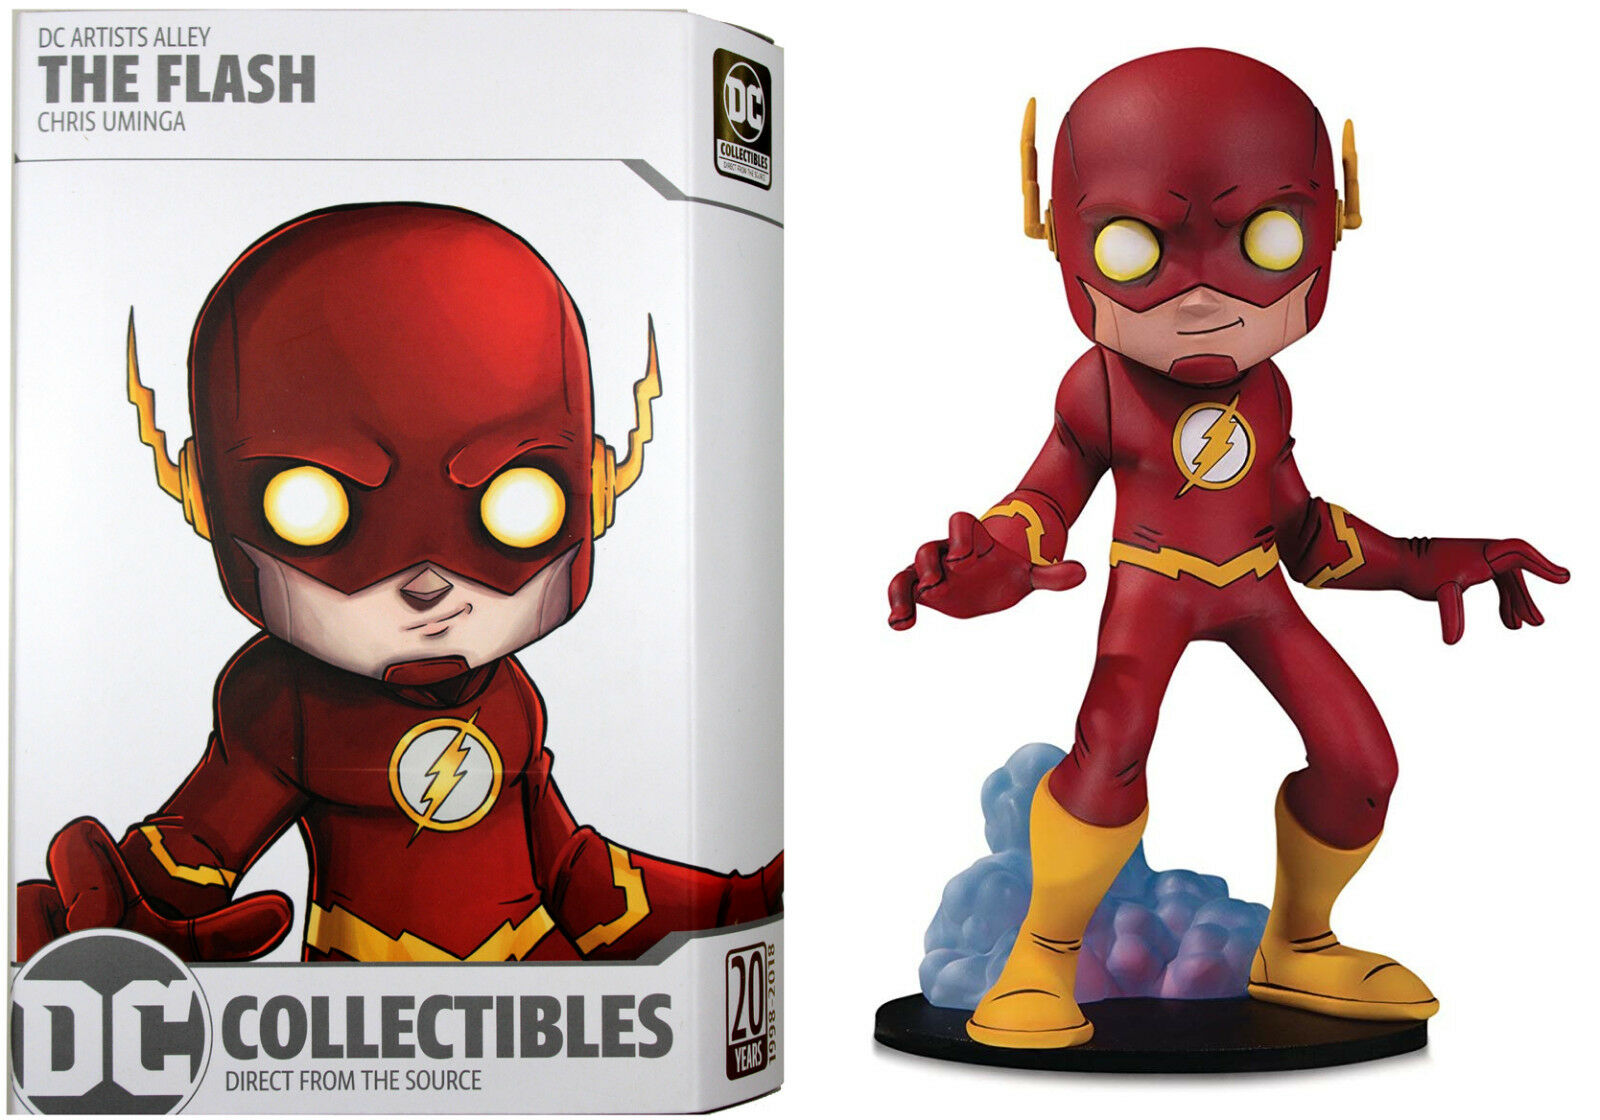 DC Comics Artist Alley  THE FLASH STATUE by CHRIS UMINGA  DC Collectibles